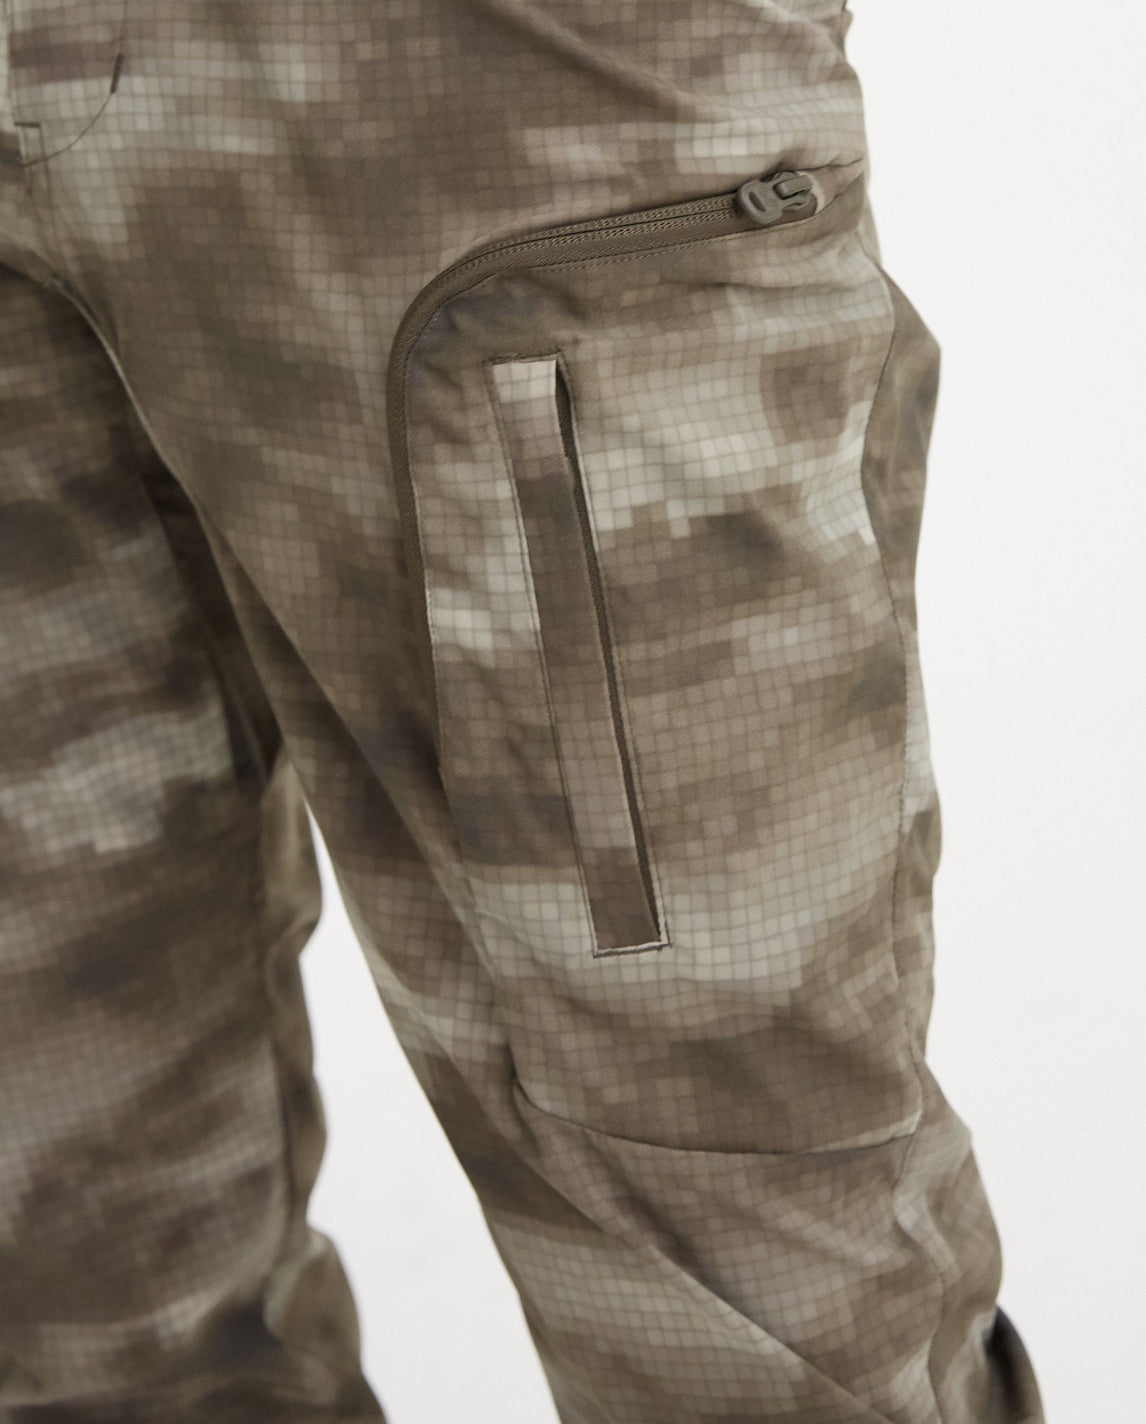 Cloud Camo Printed Tech Cargo Pants - Khaki UNISEX WHITE MOUNTAINEERING